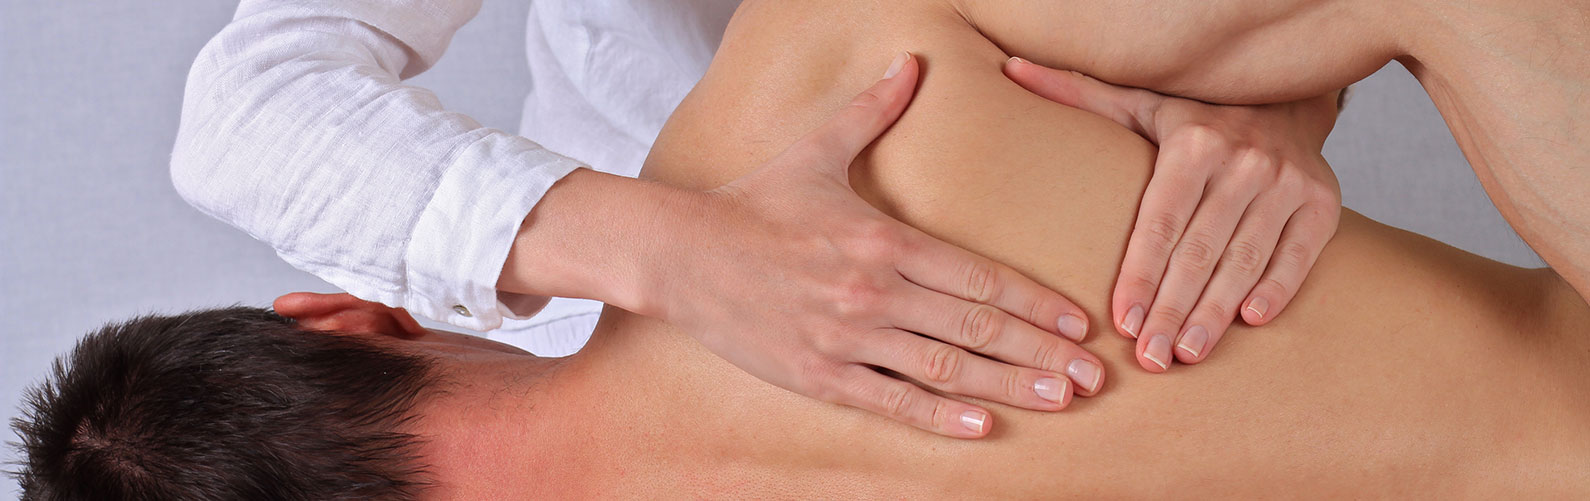 Weybridge Physiotherapy treatments